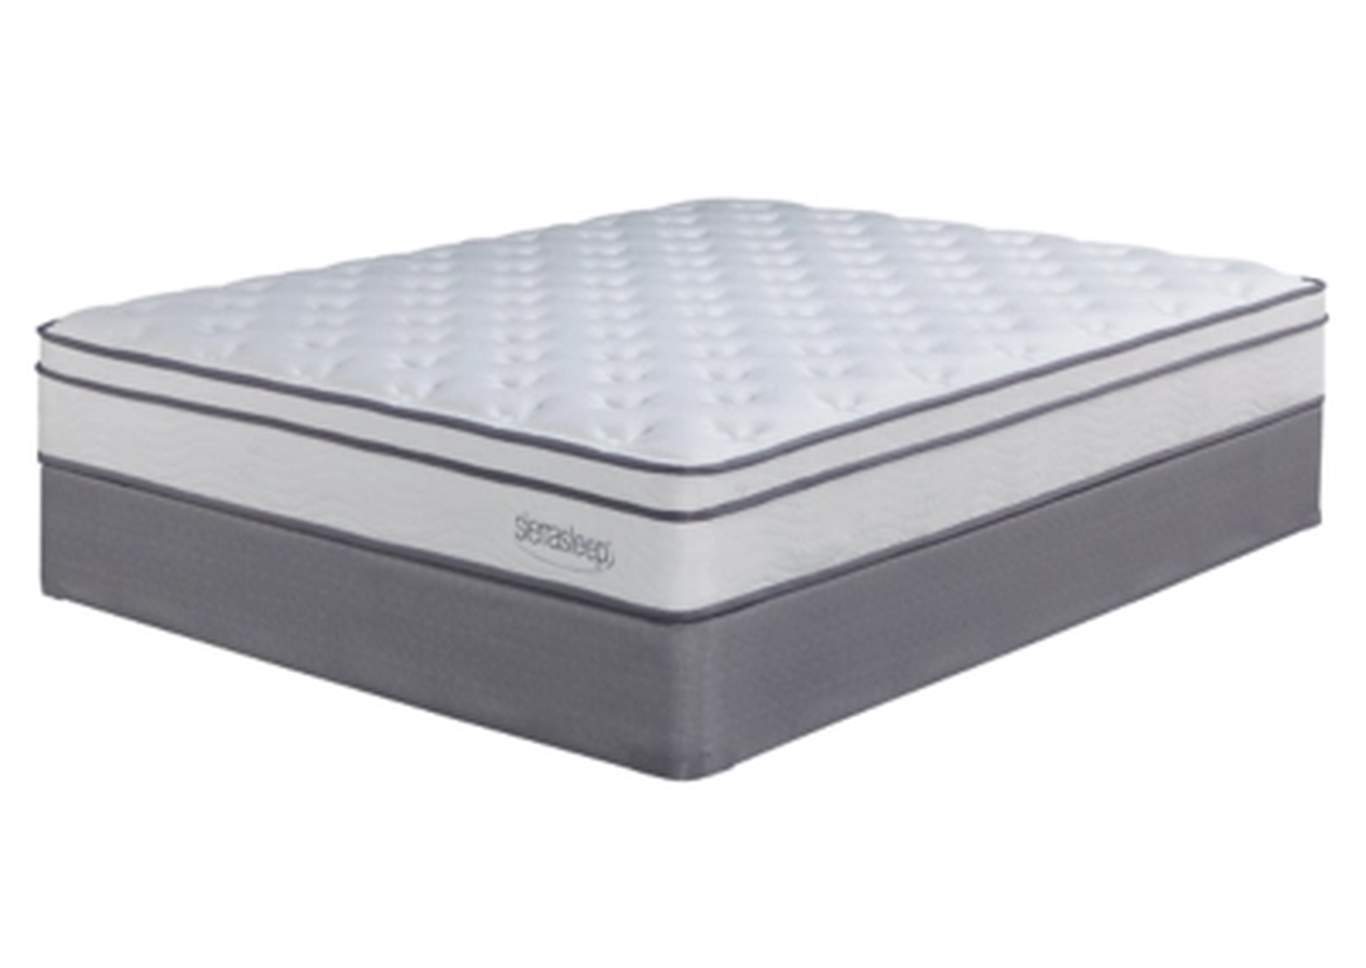 Longs Peak Limited White California King Mattress w/Foundation,Sierra Sleep by Ashley